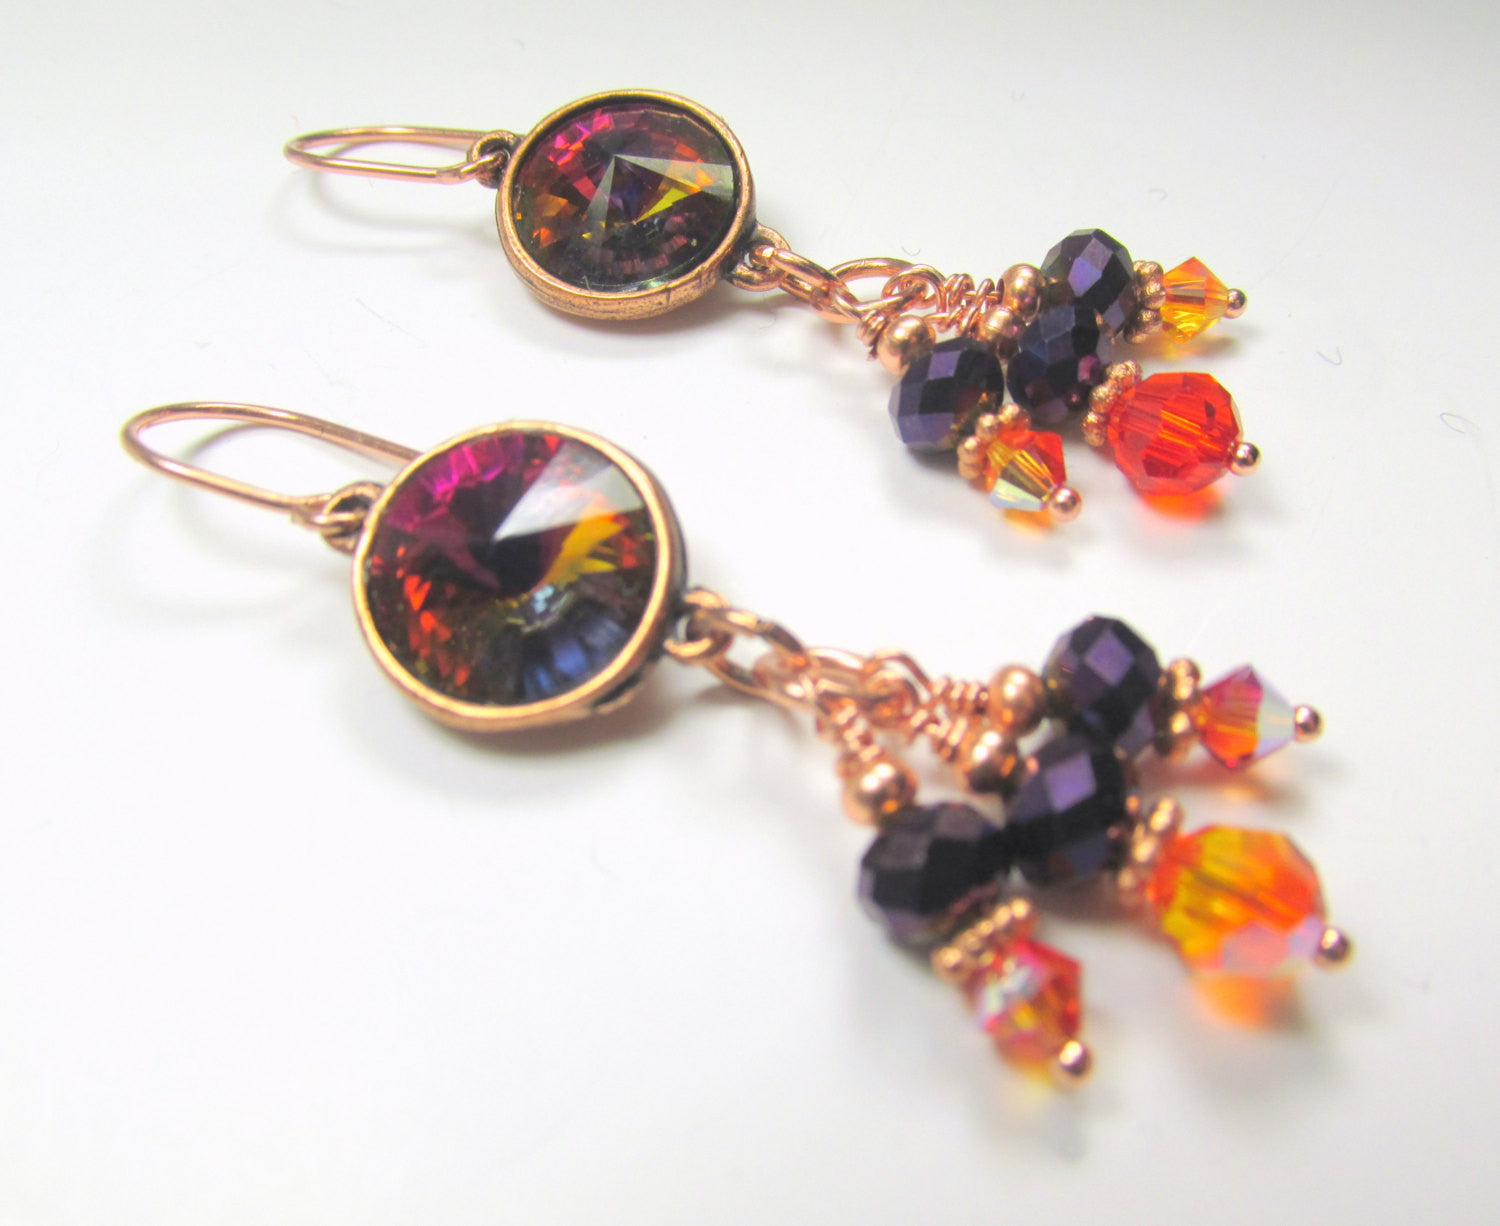 Swarovski Necklace in Rivoli Volcano Crystals set in Copper Settings with Swarovski Fire Opal AB Orange and Metallic Purple Crystals - Odyssey Creations